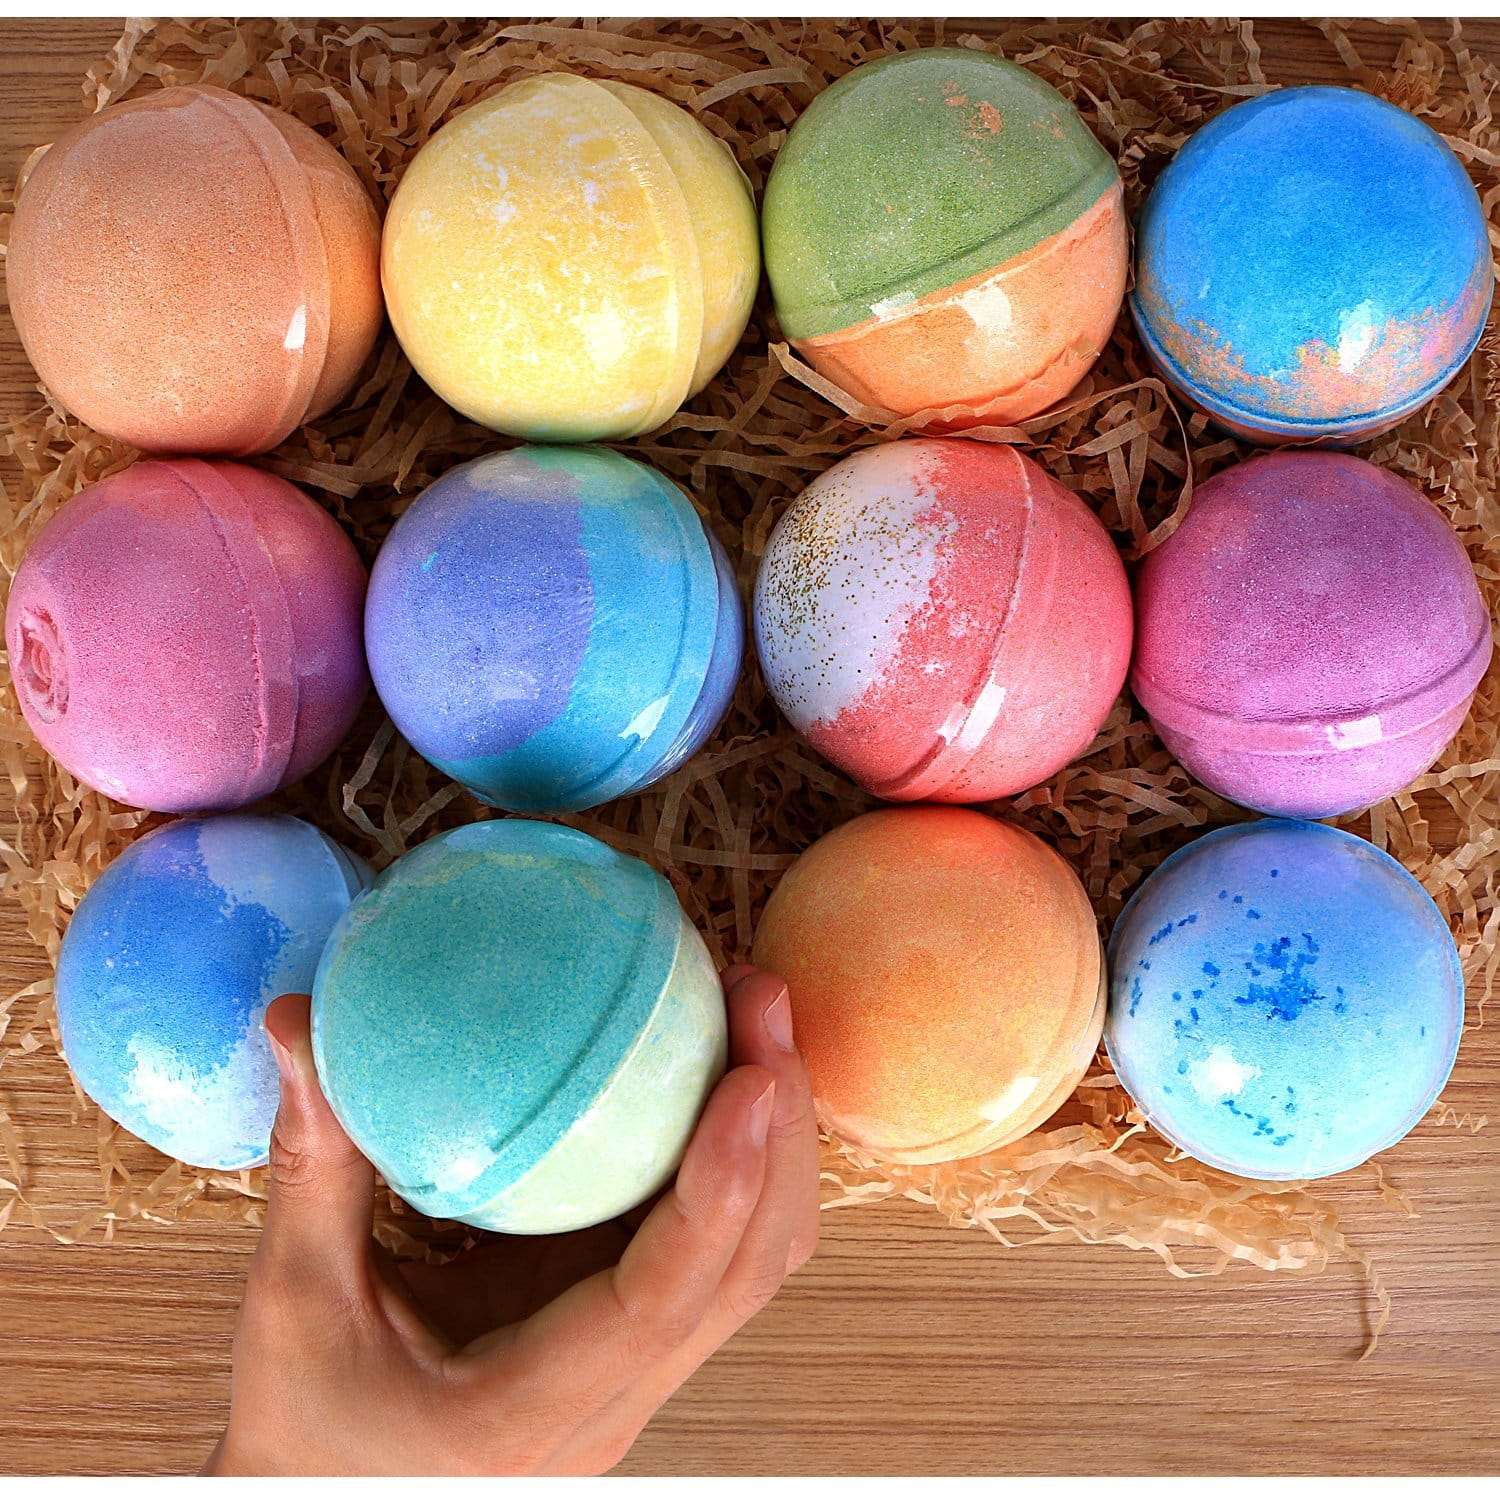 $18.89 - 12 Bath Bombs Gift Set Super Large 5oz Handmade with Natural Vegan Shea & Cocoa Butter Spa with Fizzies